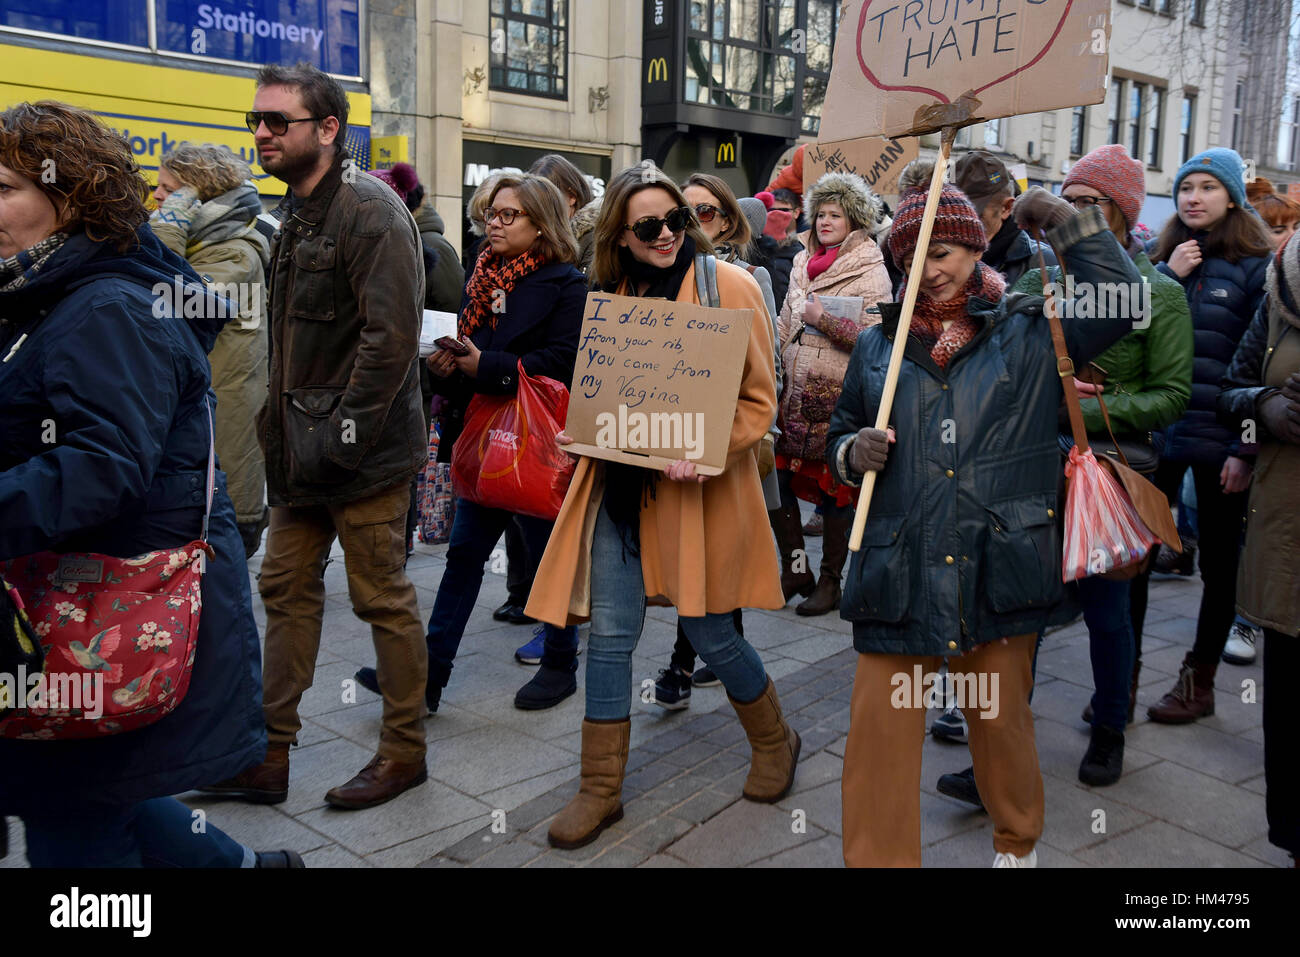 Women's No to Trump, protest and march, Cardiff. Charlotte Church, pictured. - Stock Image